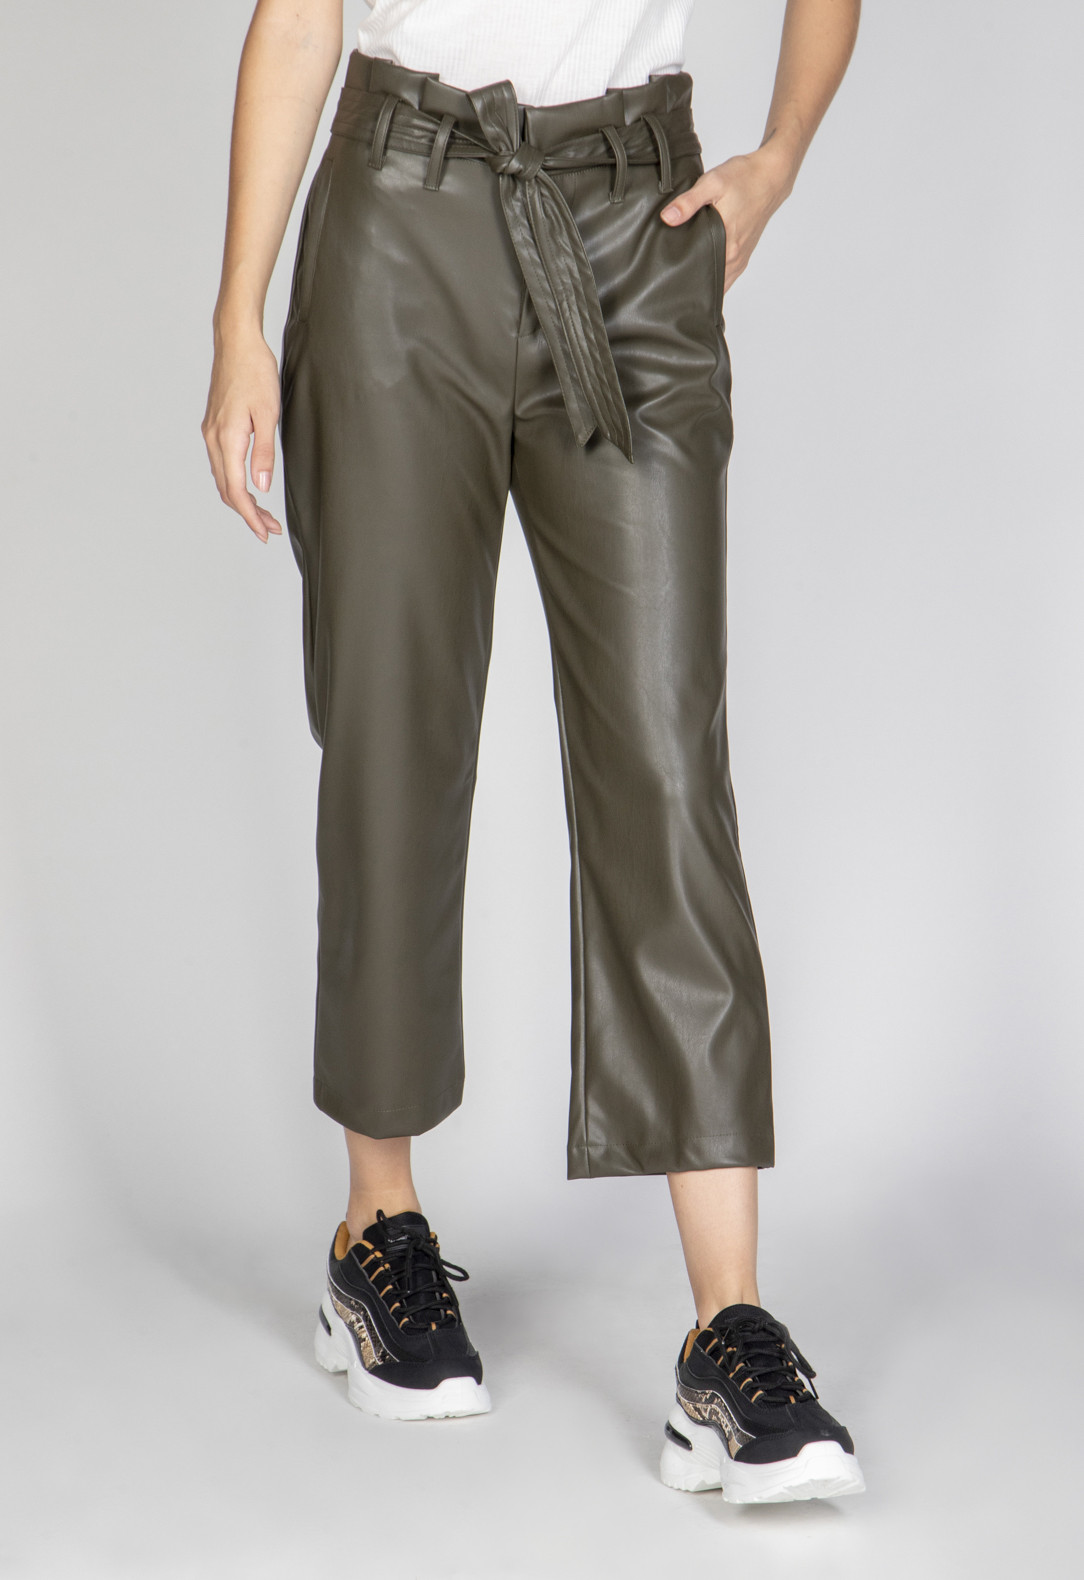 High Waist Pu Pants